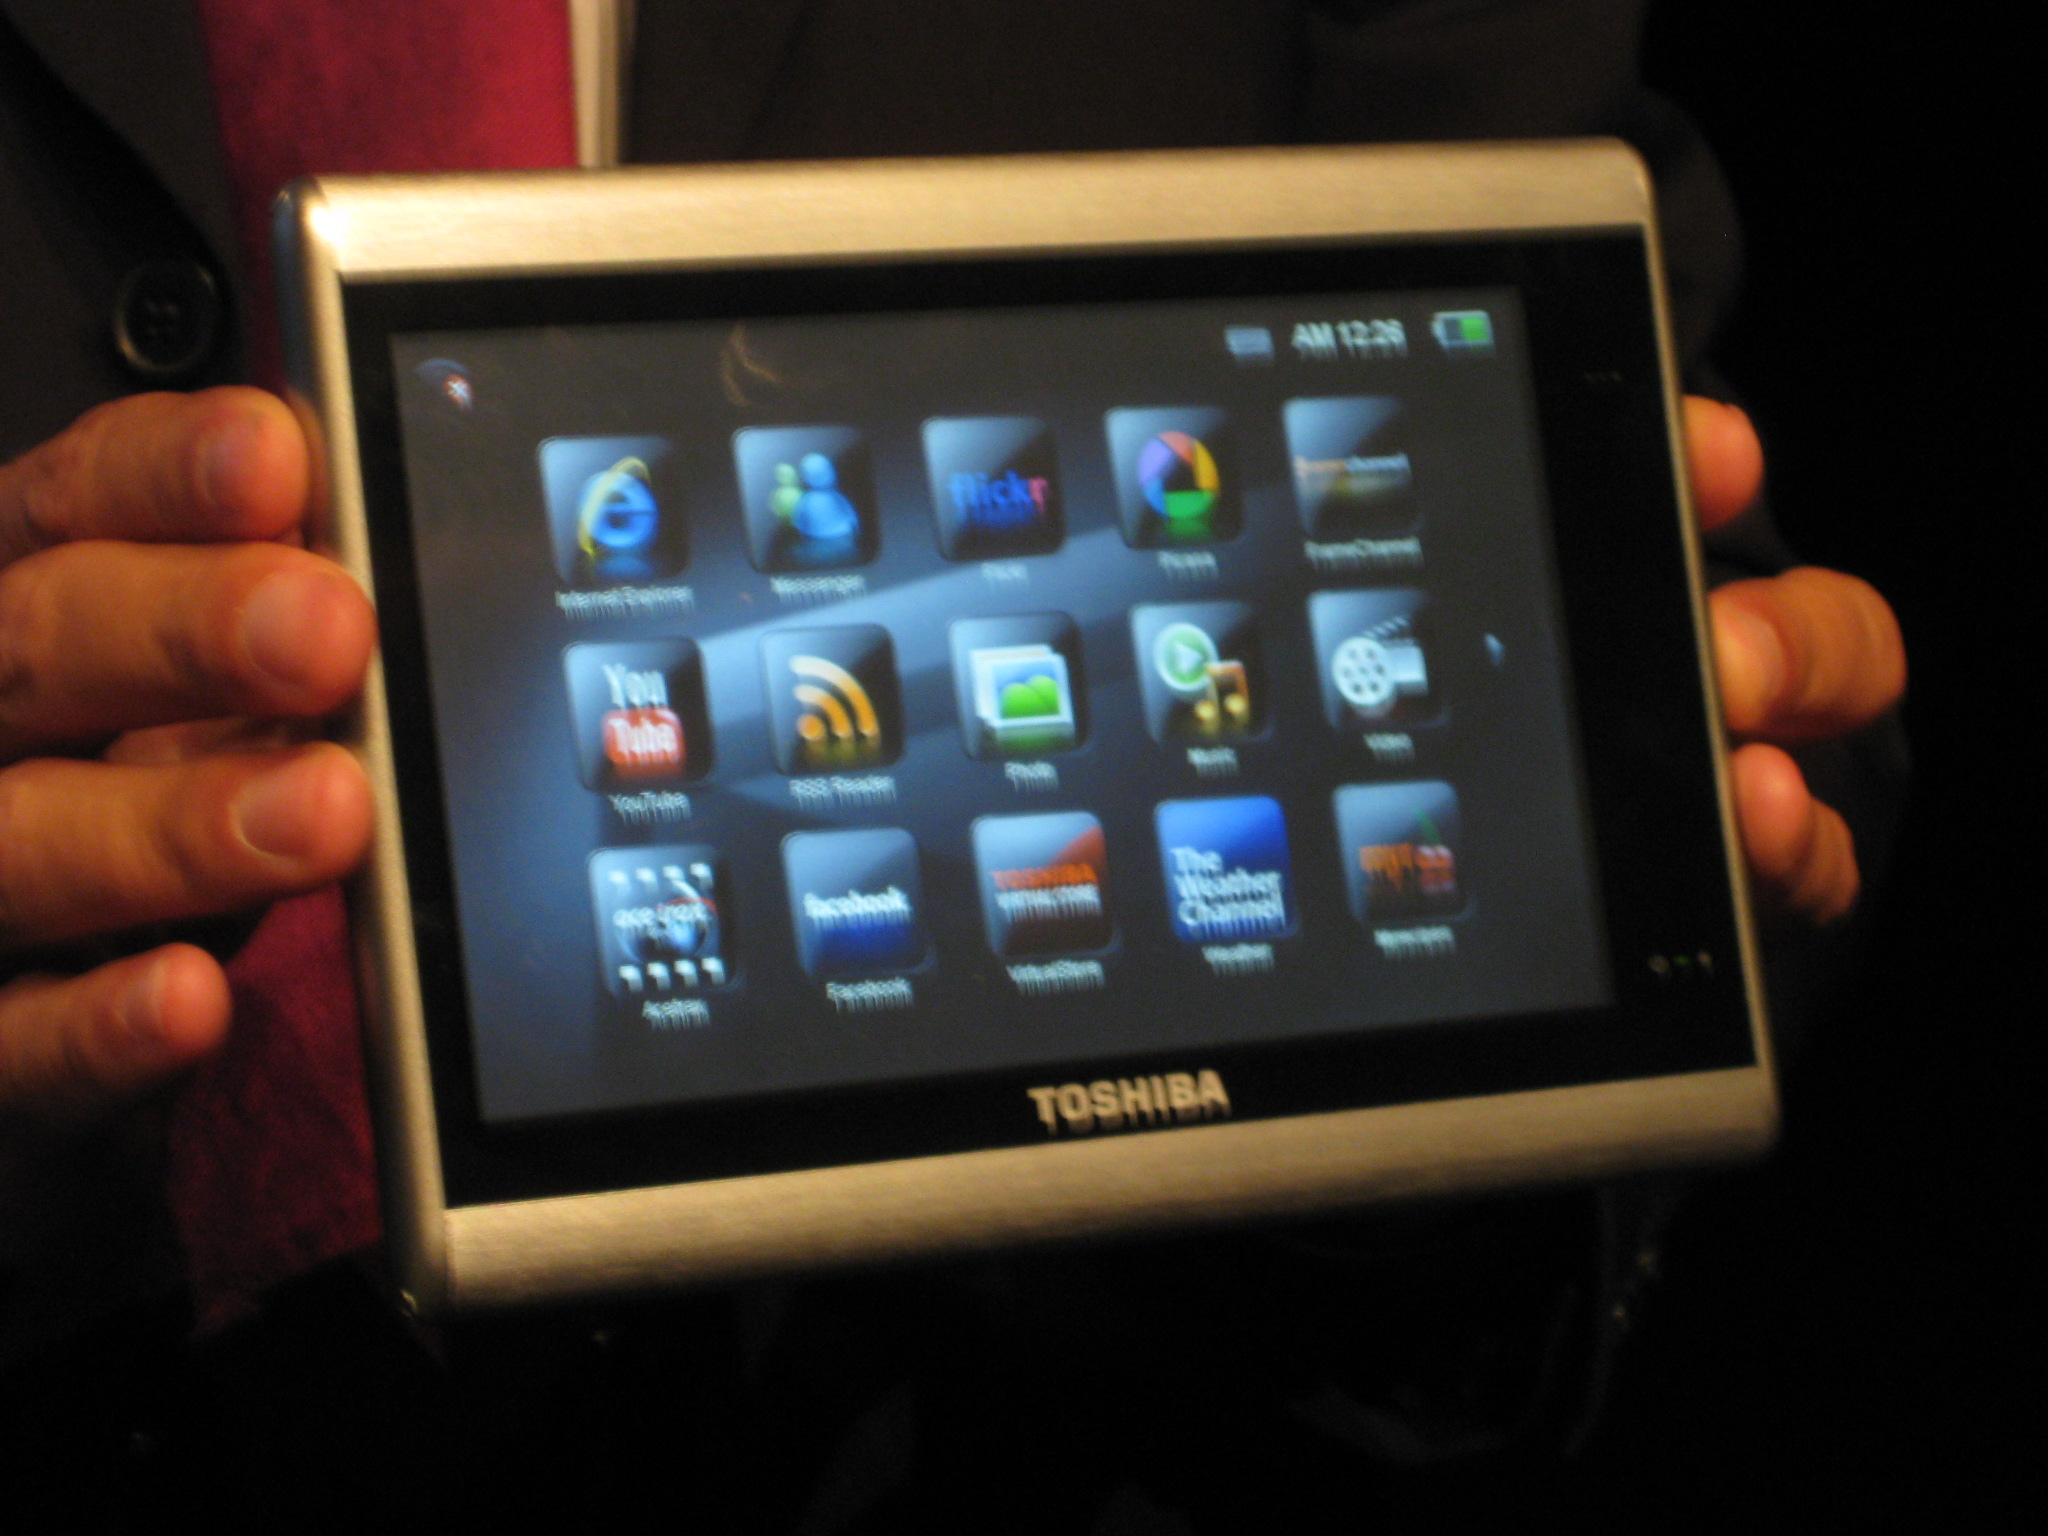 Toshiba touchscreen tablet